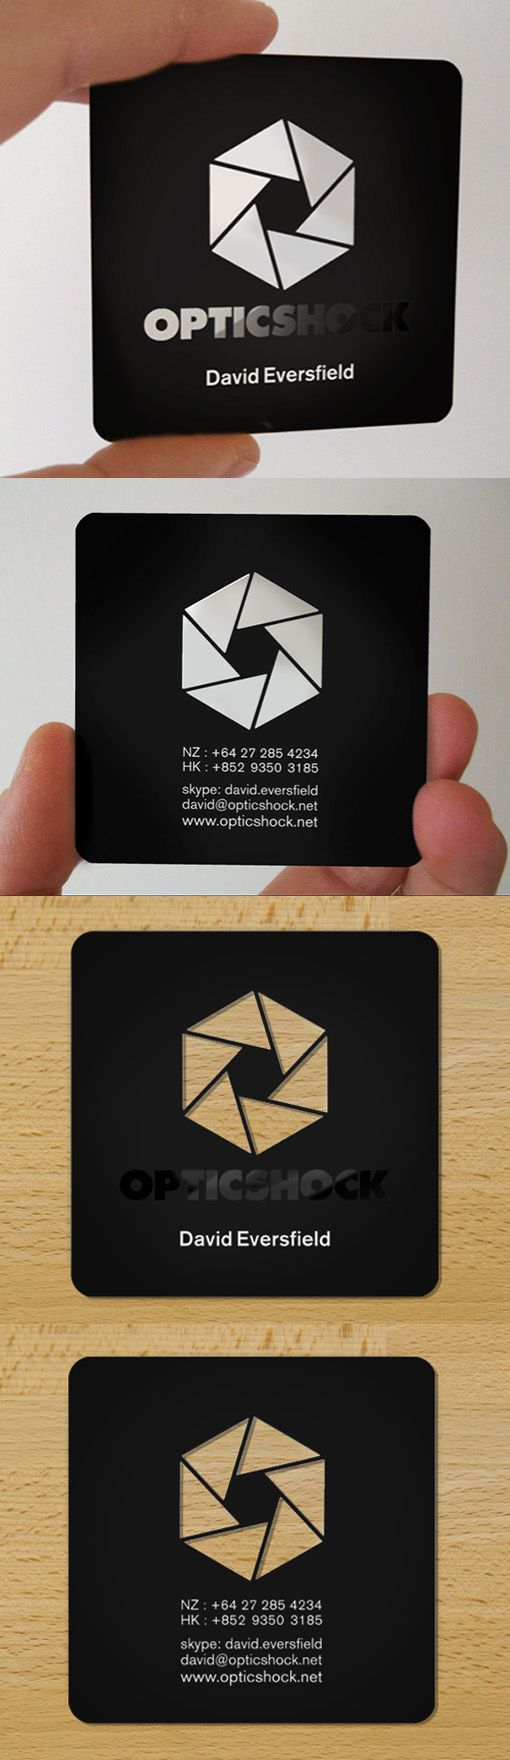 17 best images about cards on pinterest design card printing and slick laser cut black plastic business card design colourmoves